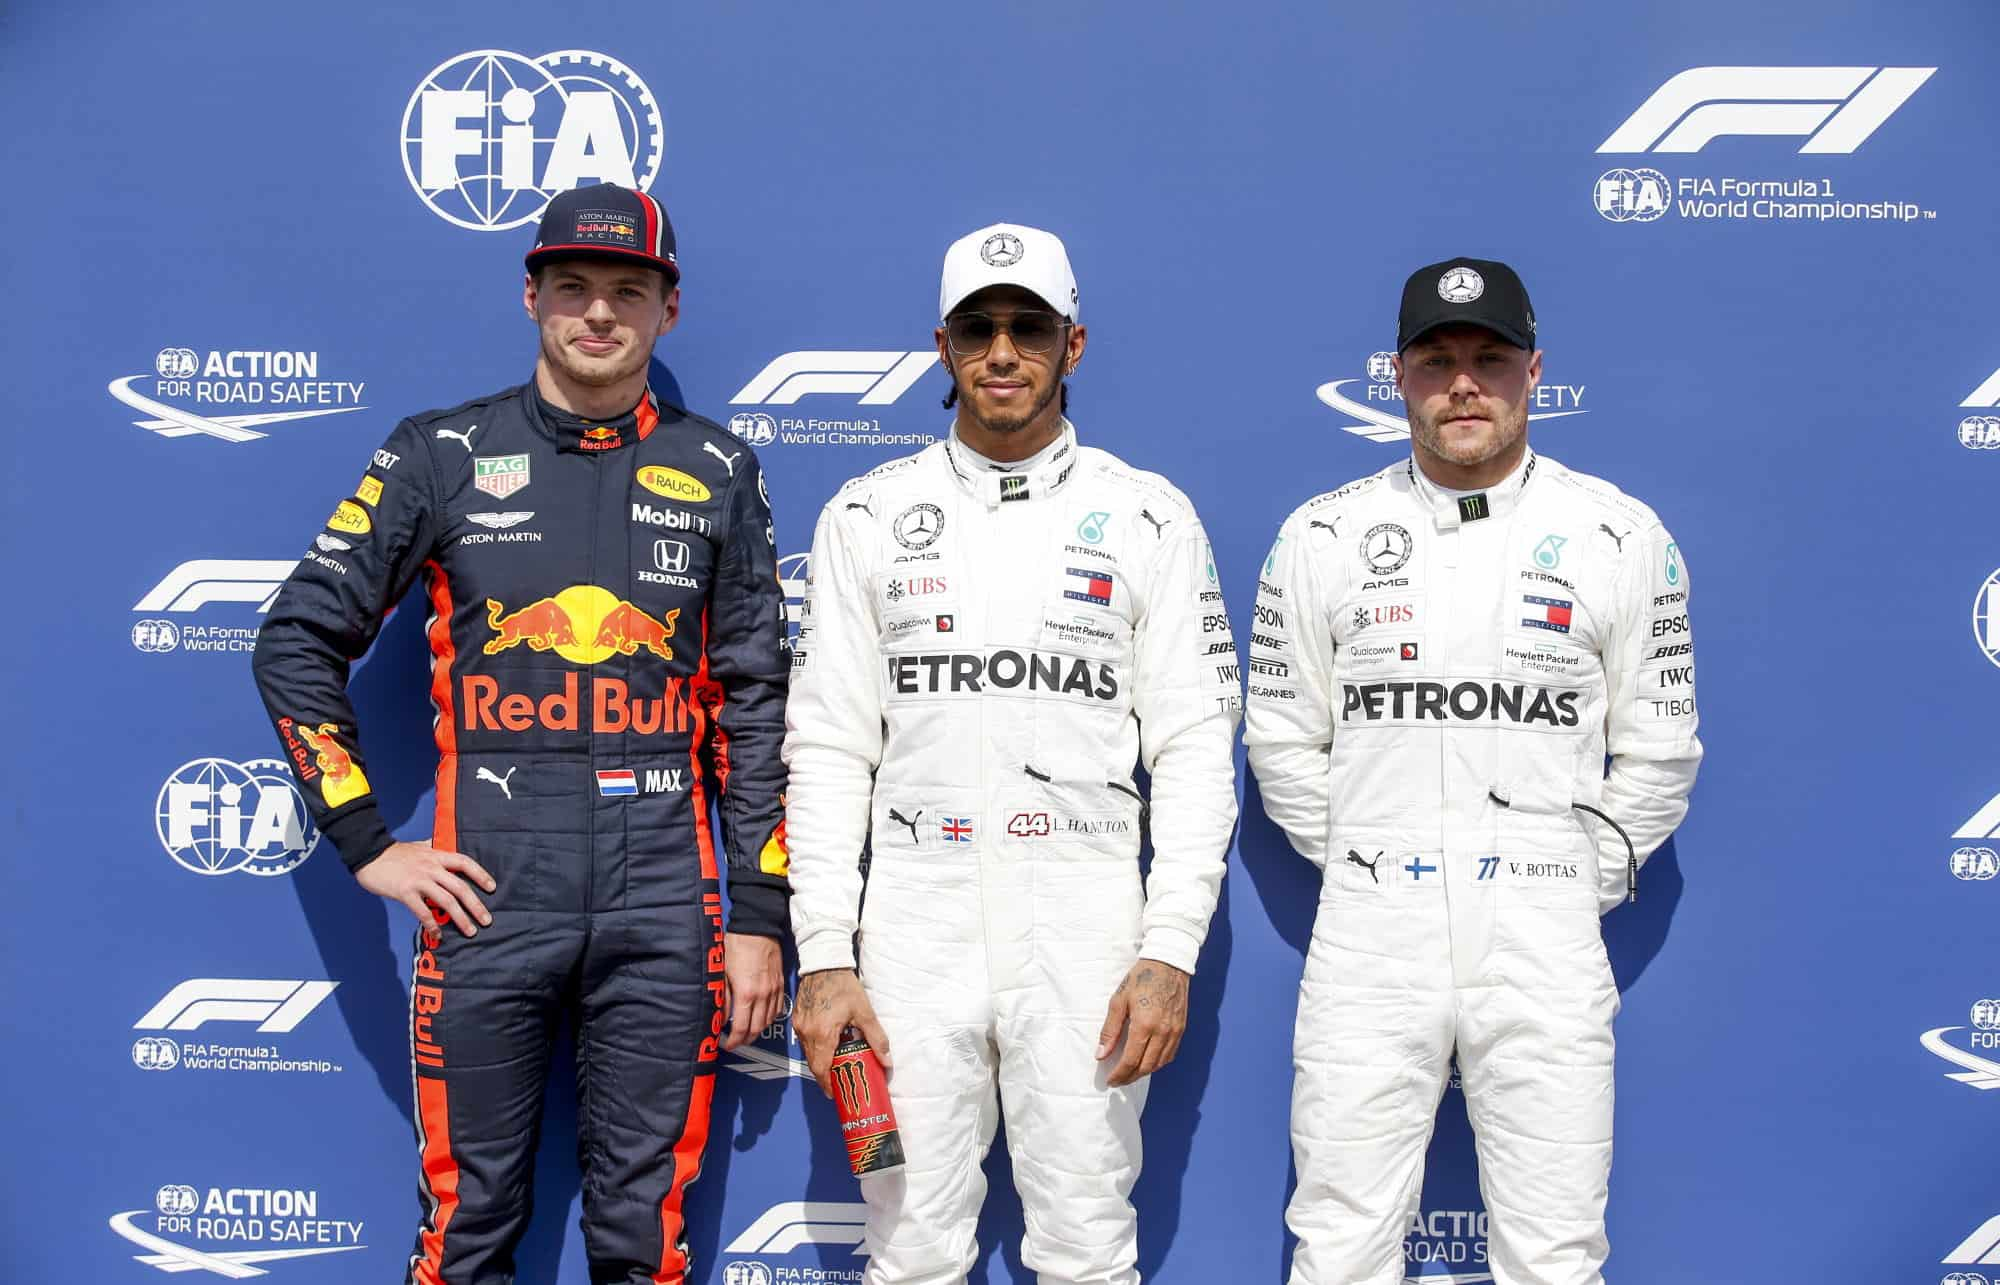 Hamilton Verstappen Bottas German GP F1 2019 post qualifying top three Photo Daimler